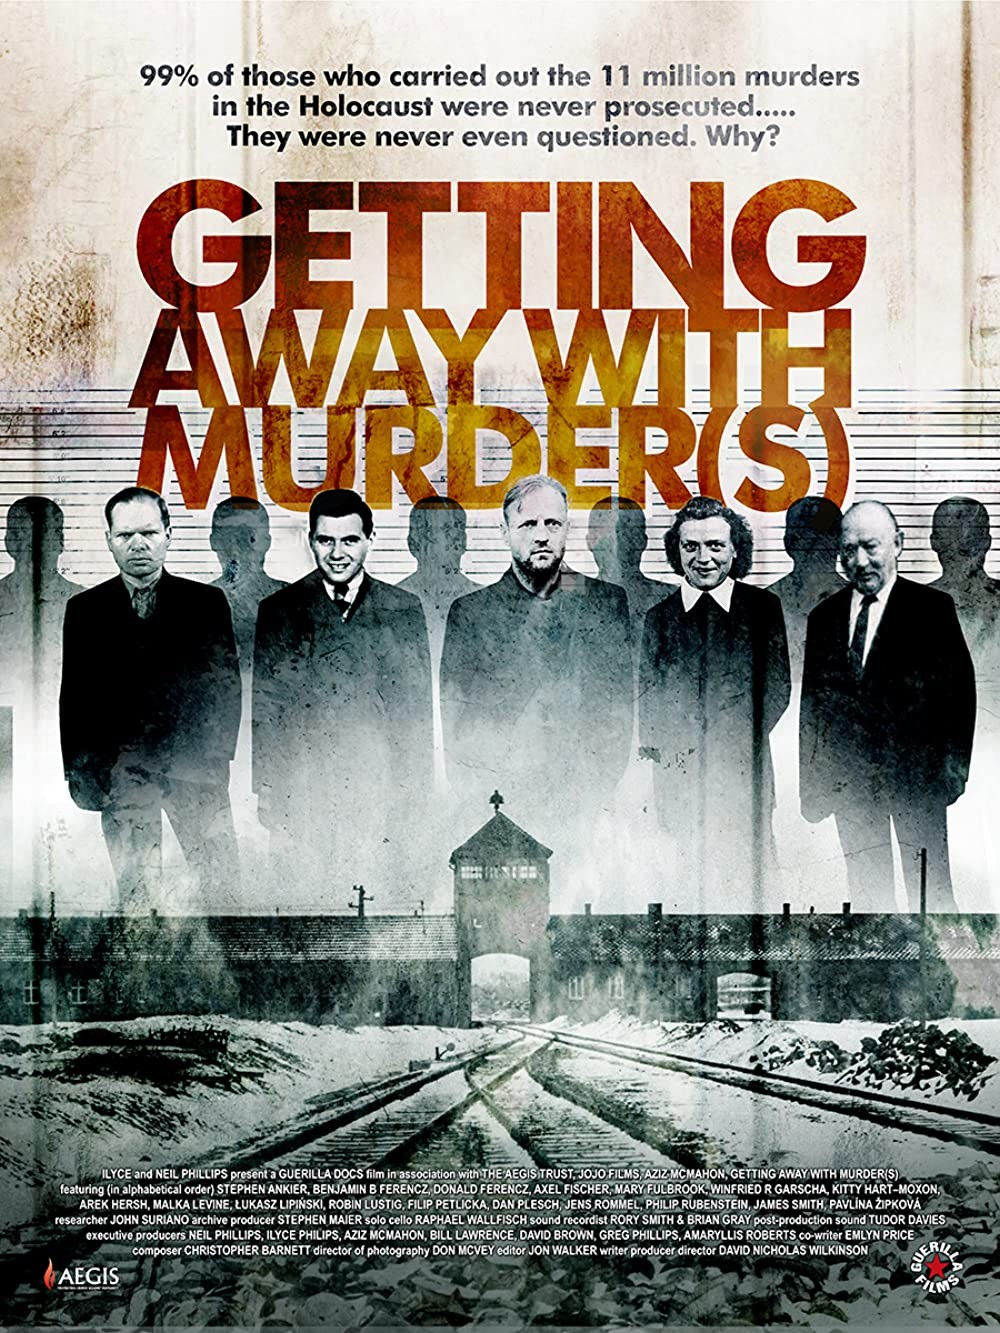 Getting Away With Murder(s) + Q&A